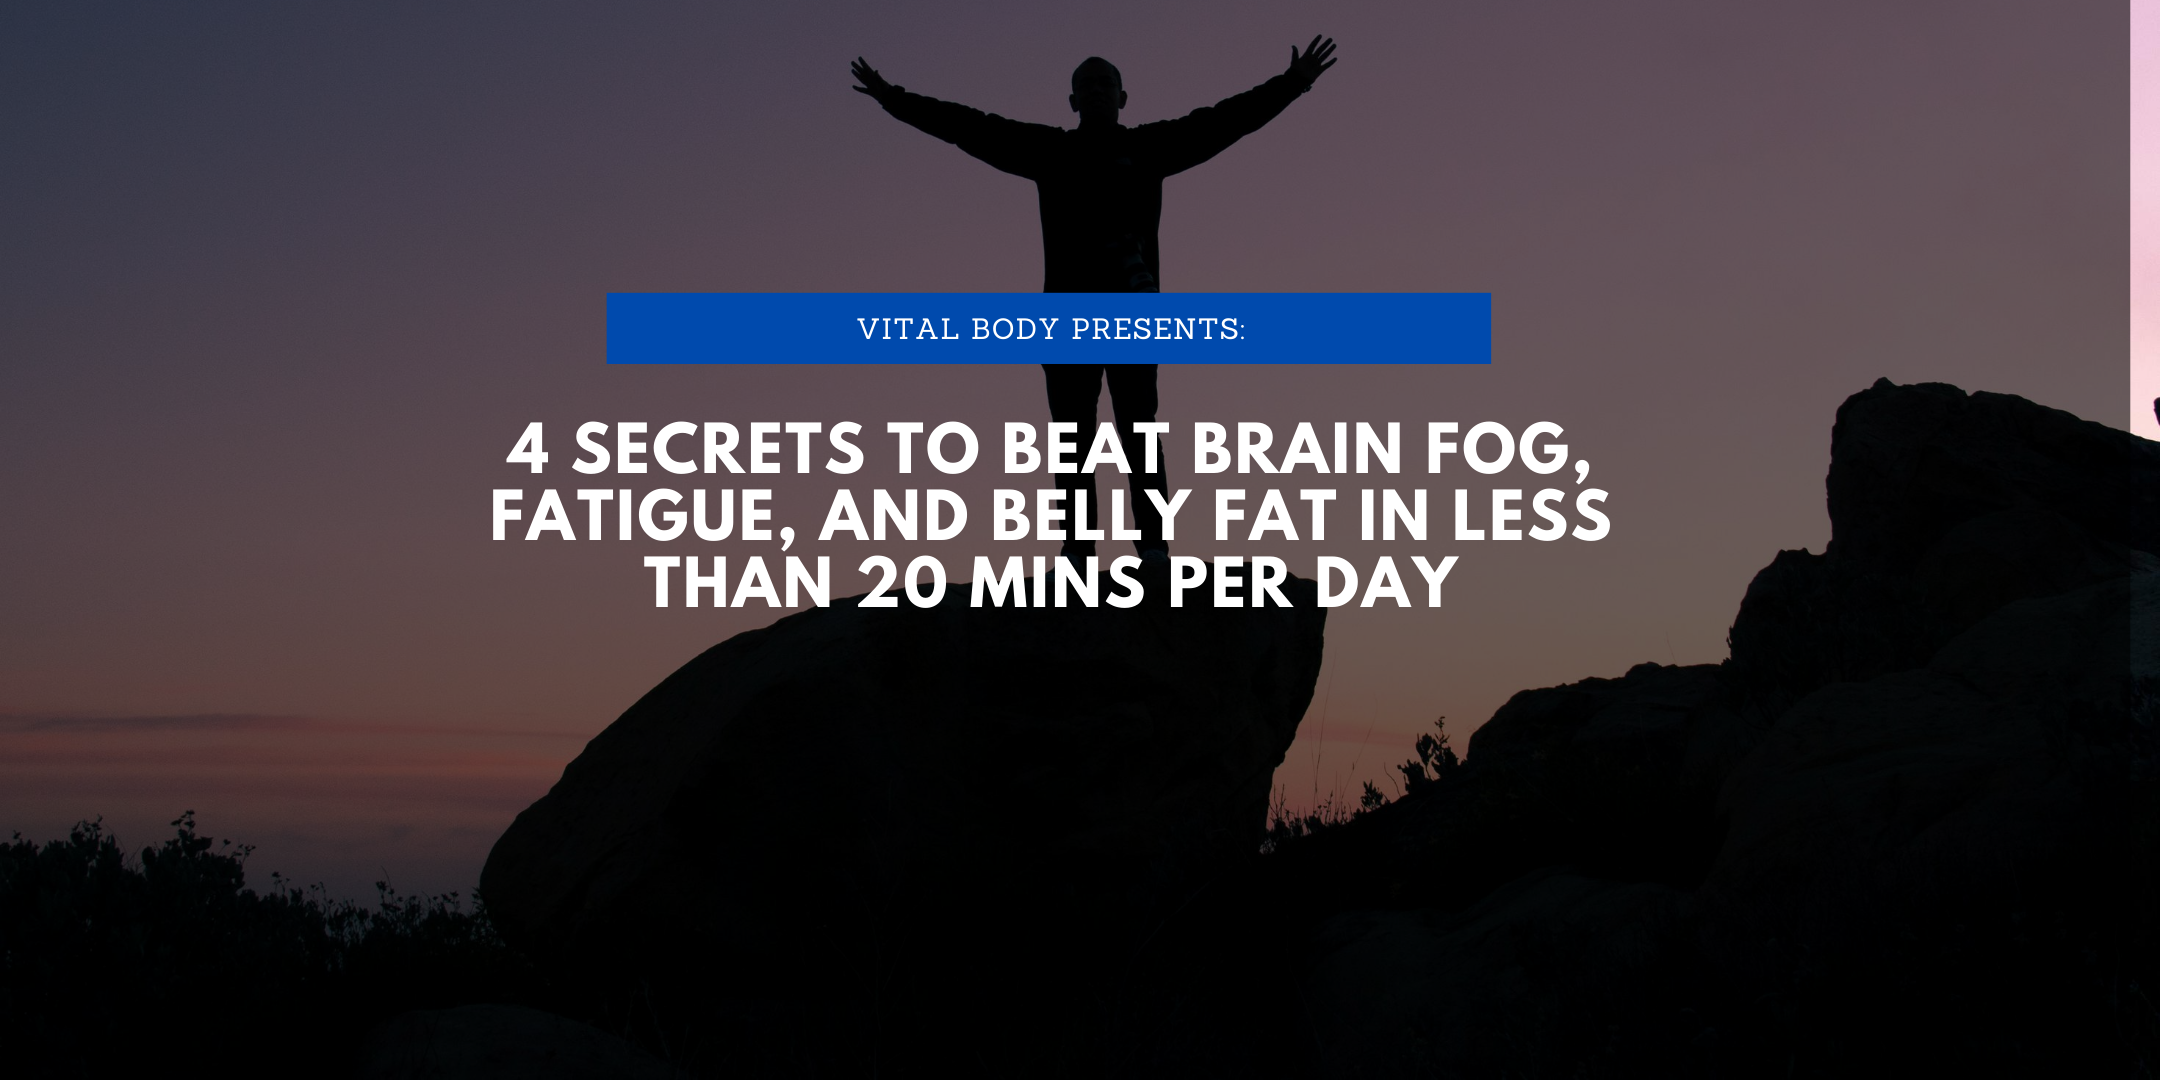 4 Secrets to Eliminate brain fog, fatigue, and fat in less than 20 mins/day